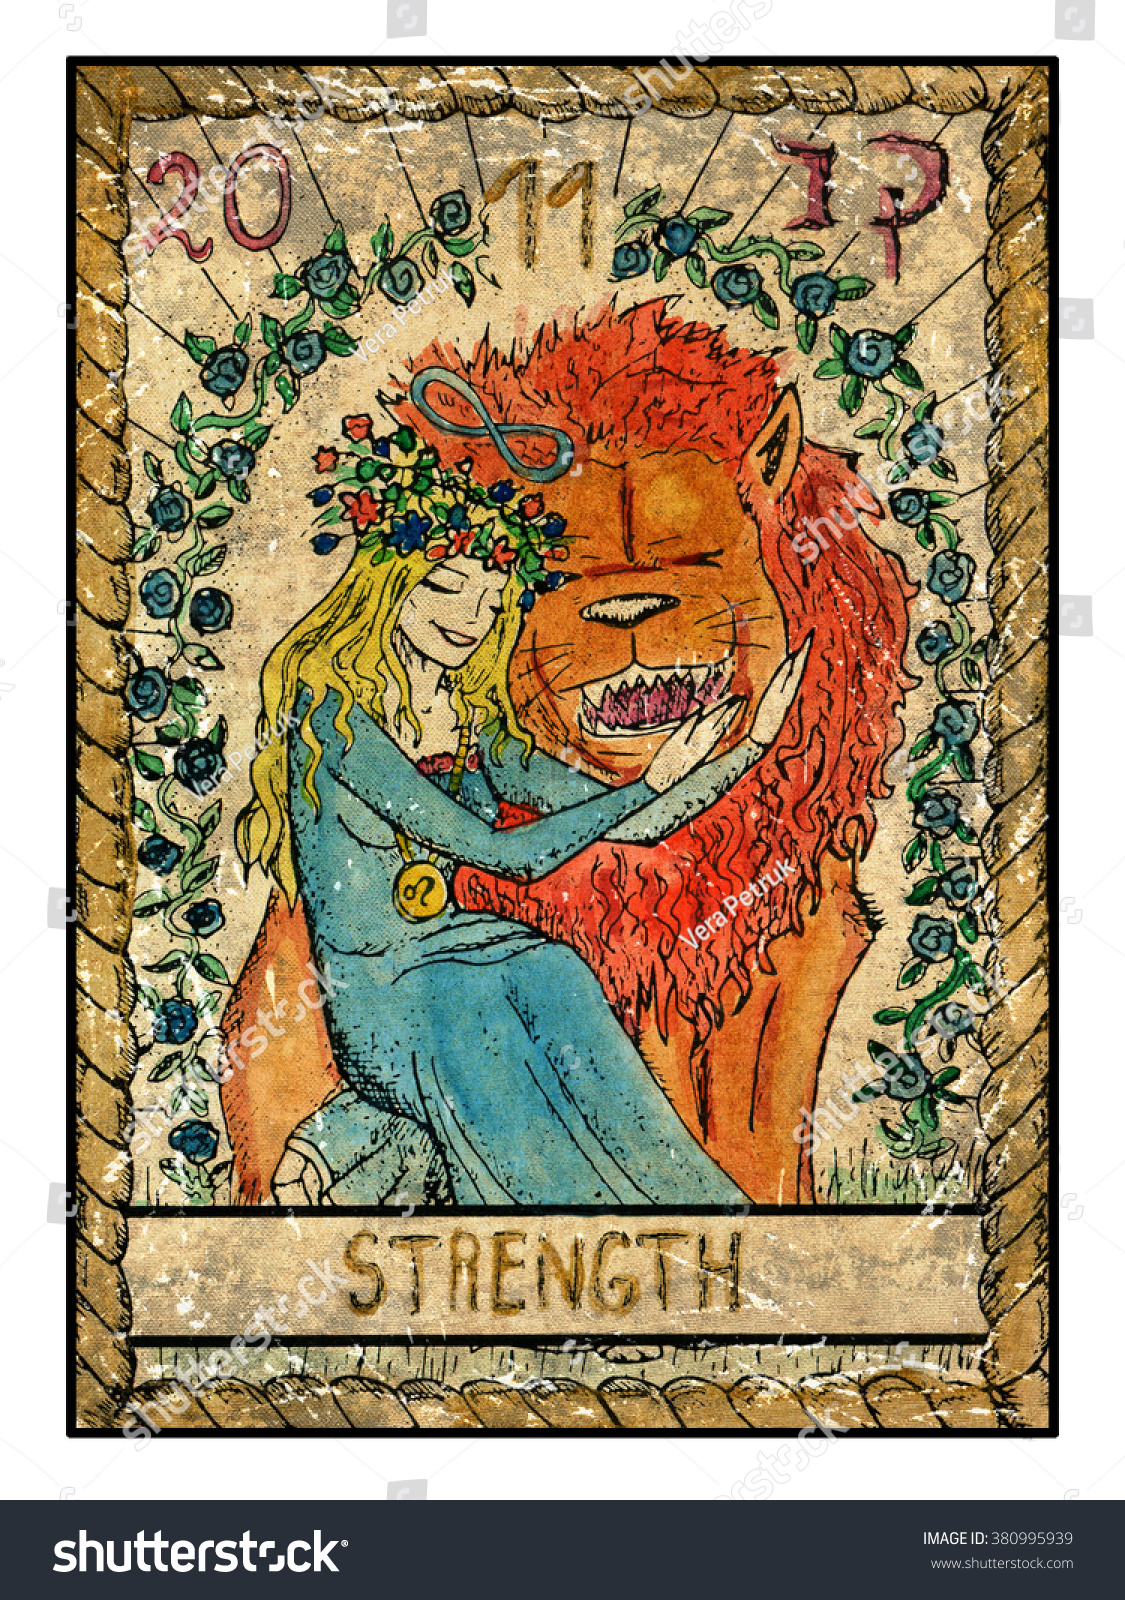 Strength Full Colorful Deck Major Arcana Stock